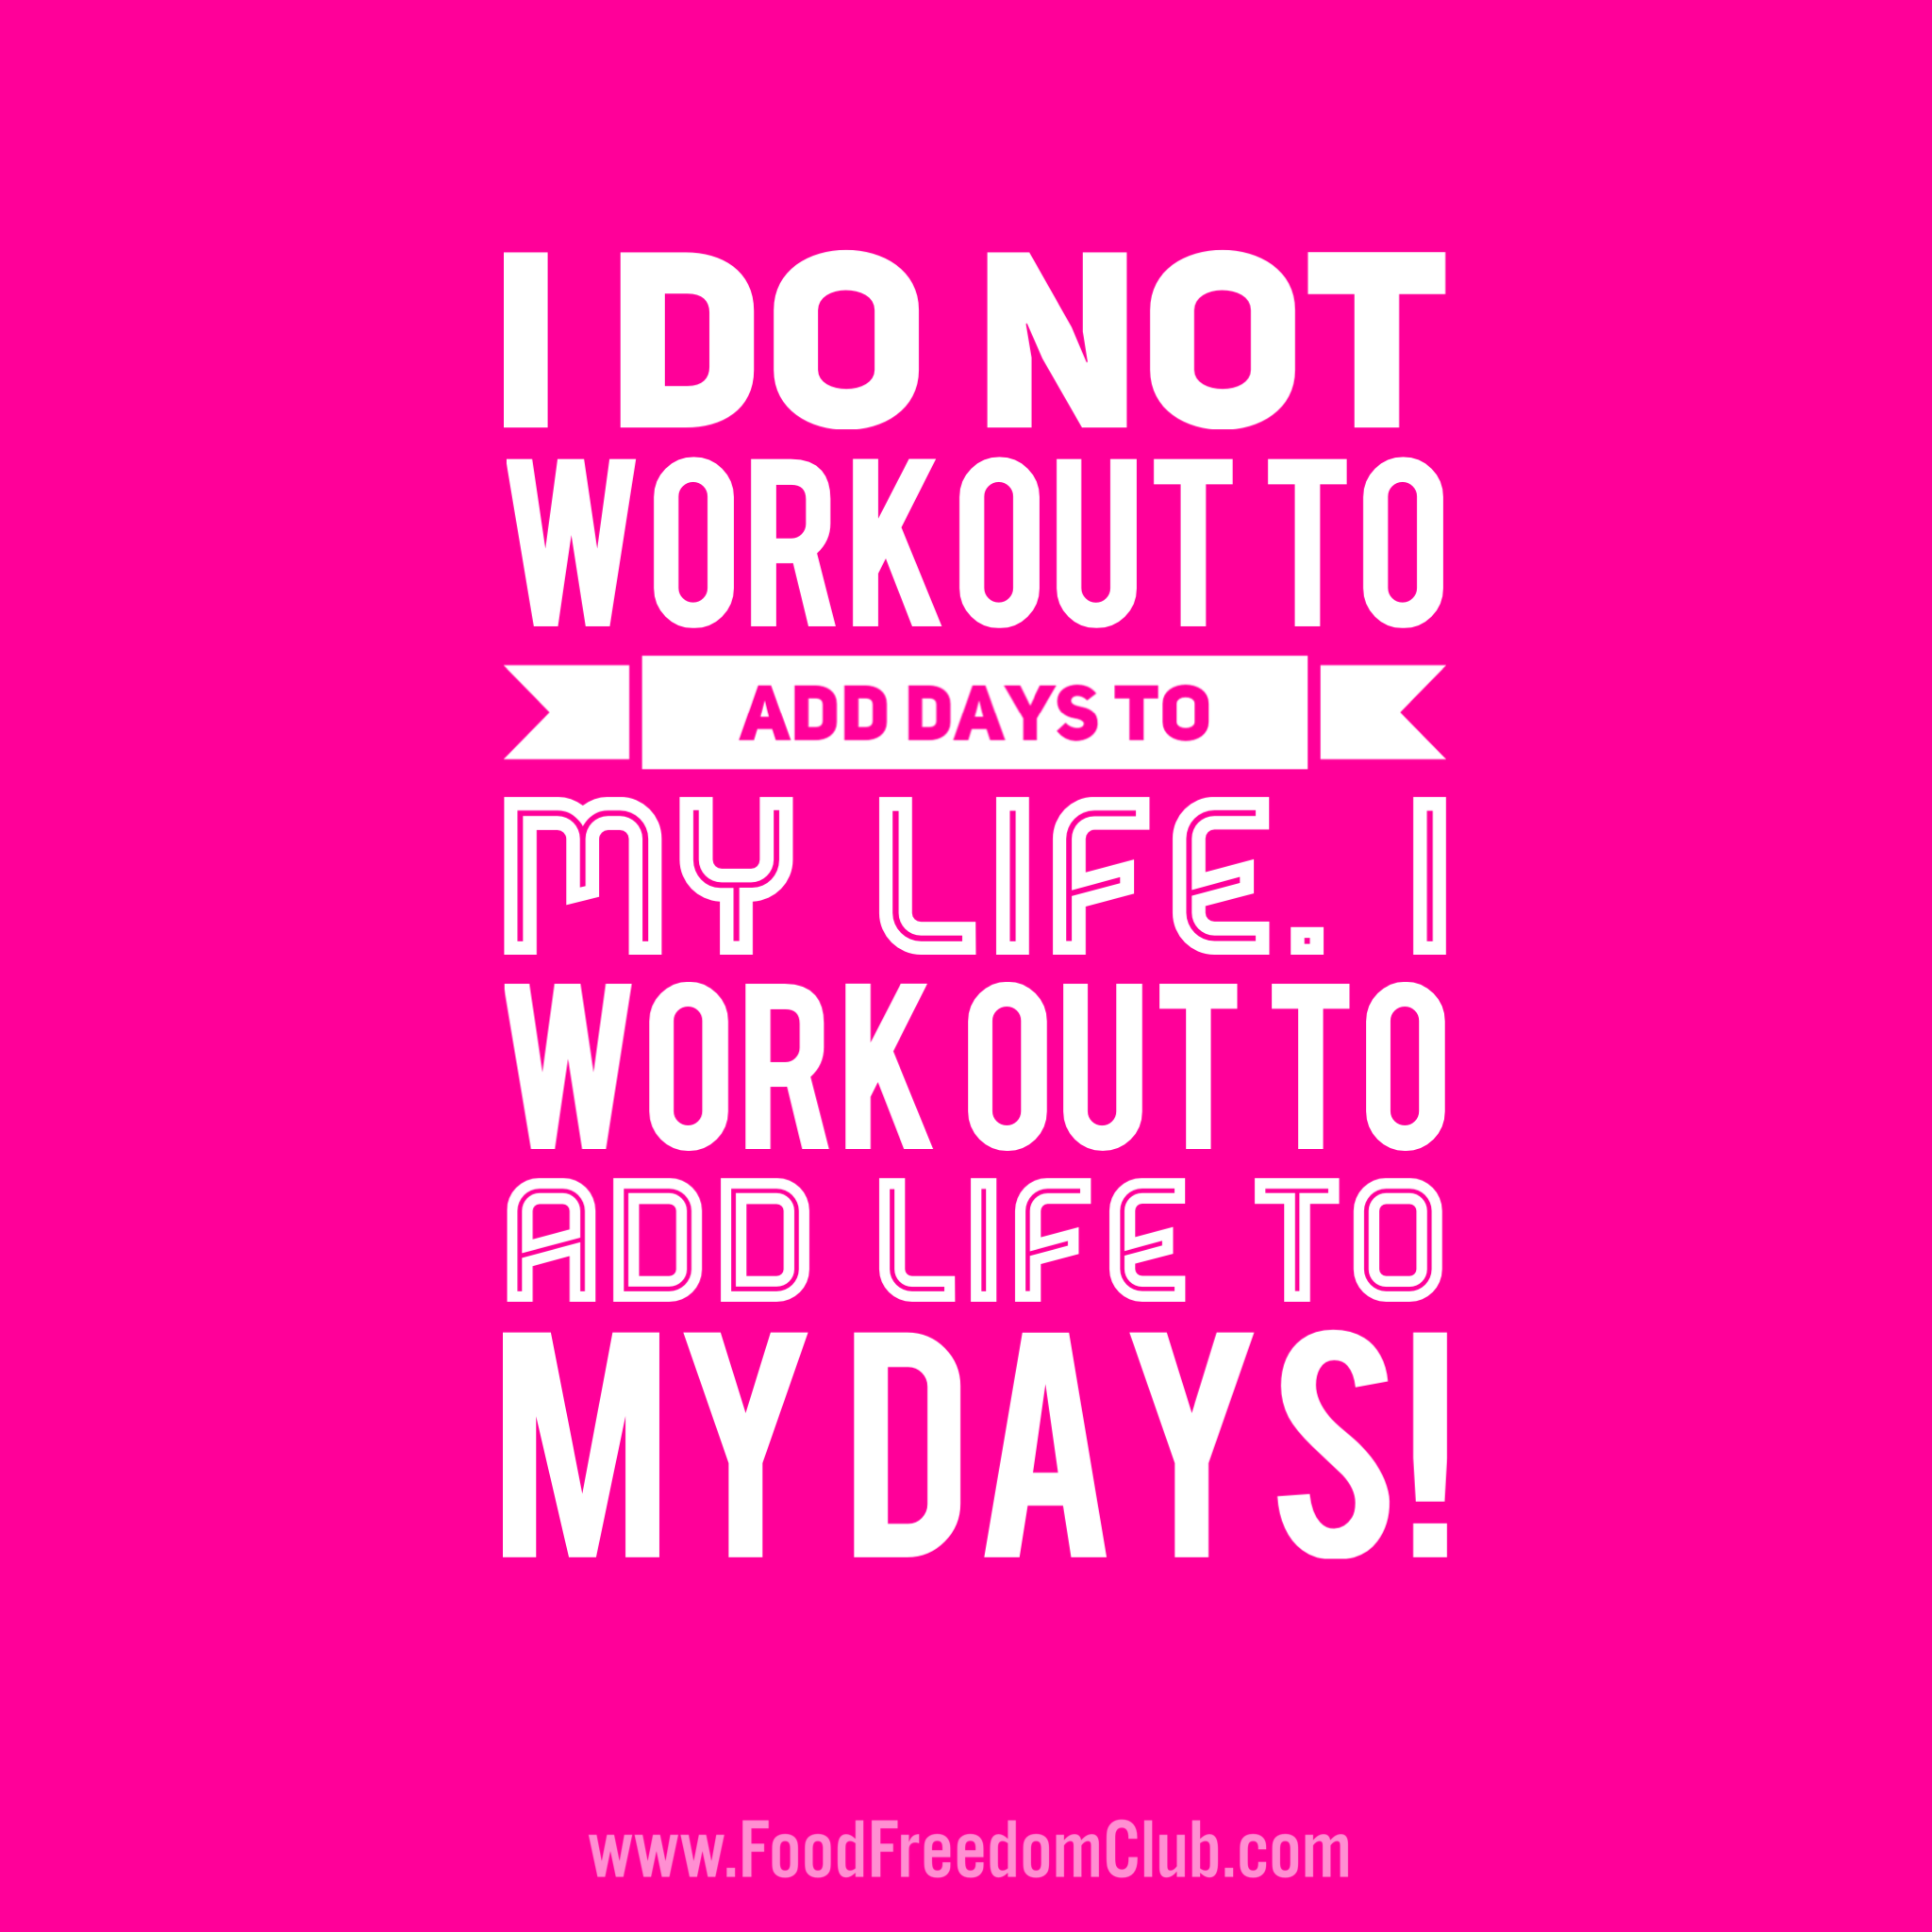 I Do Not Workout To Add Days To My Life I Workout To Add Life To My Days Food Freedom Club Fitness Motivation Quotes Best Motivational Quotes Motivation